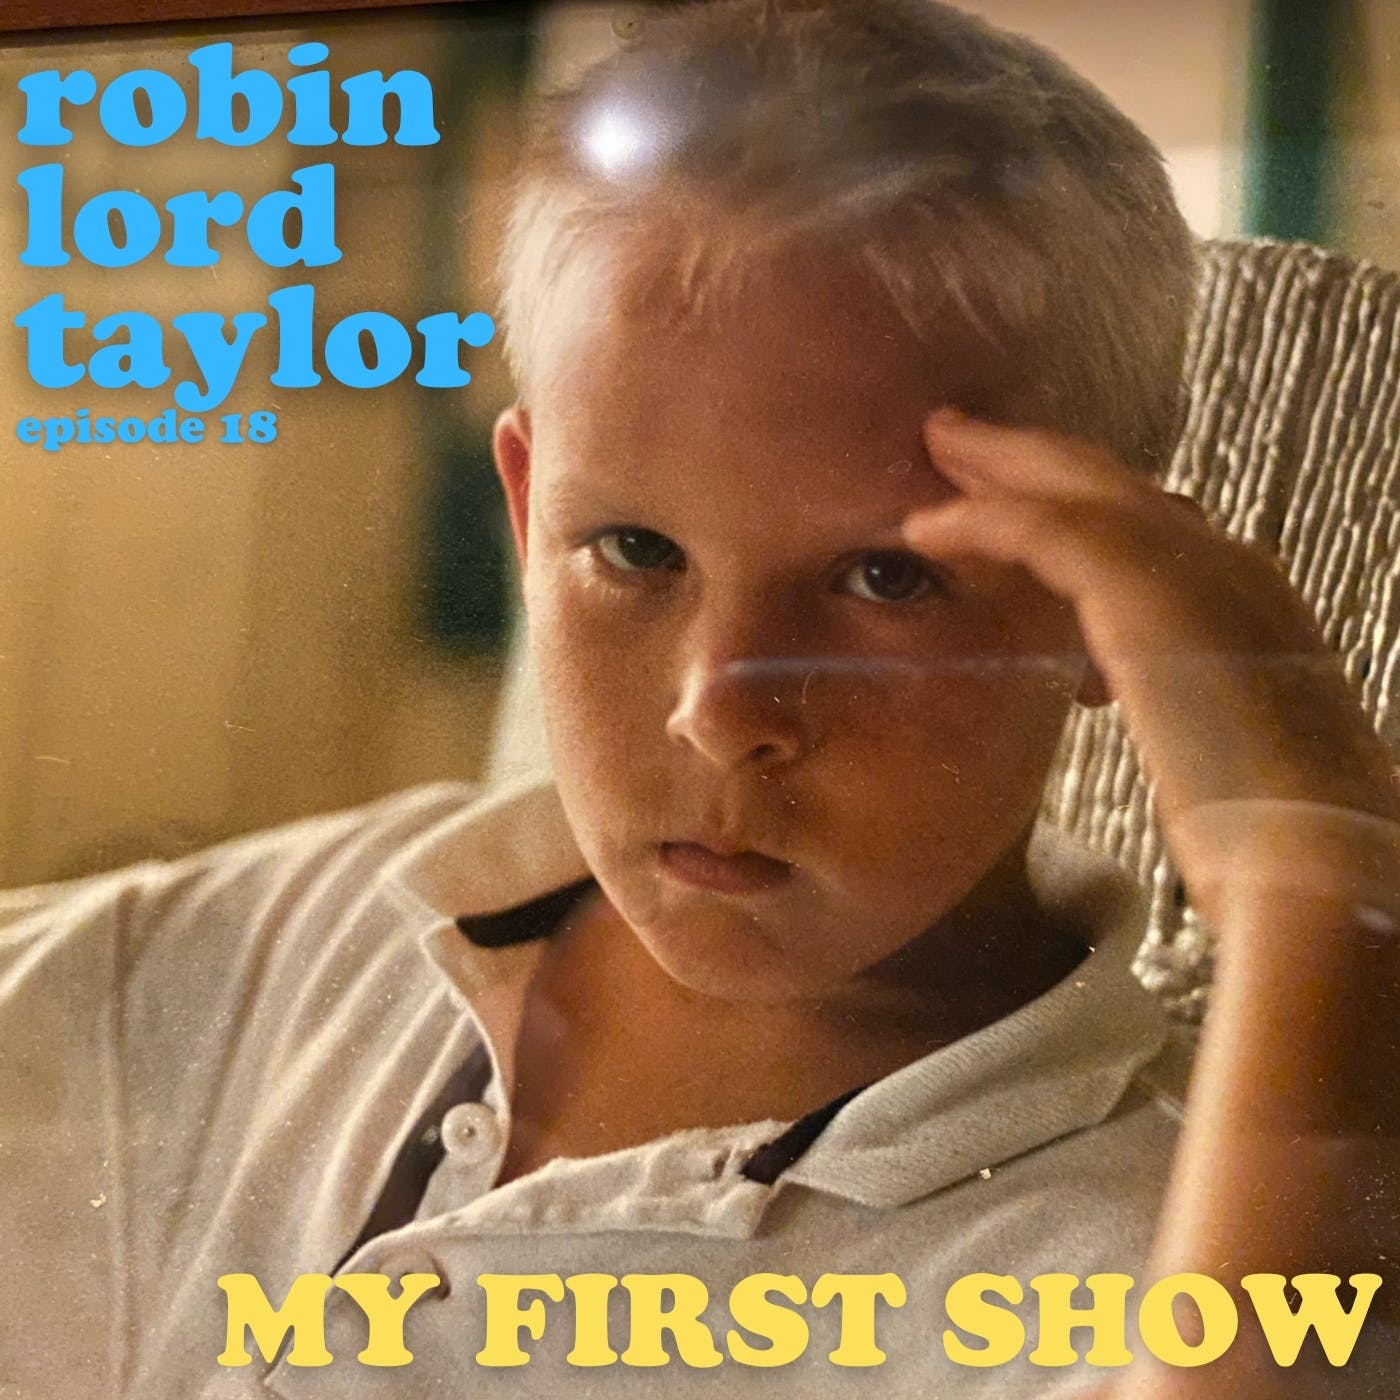 S1/Ep18: Robin Lord Taylor